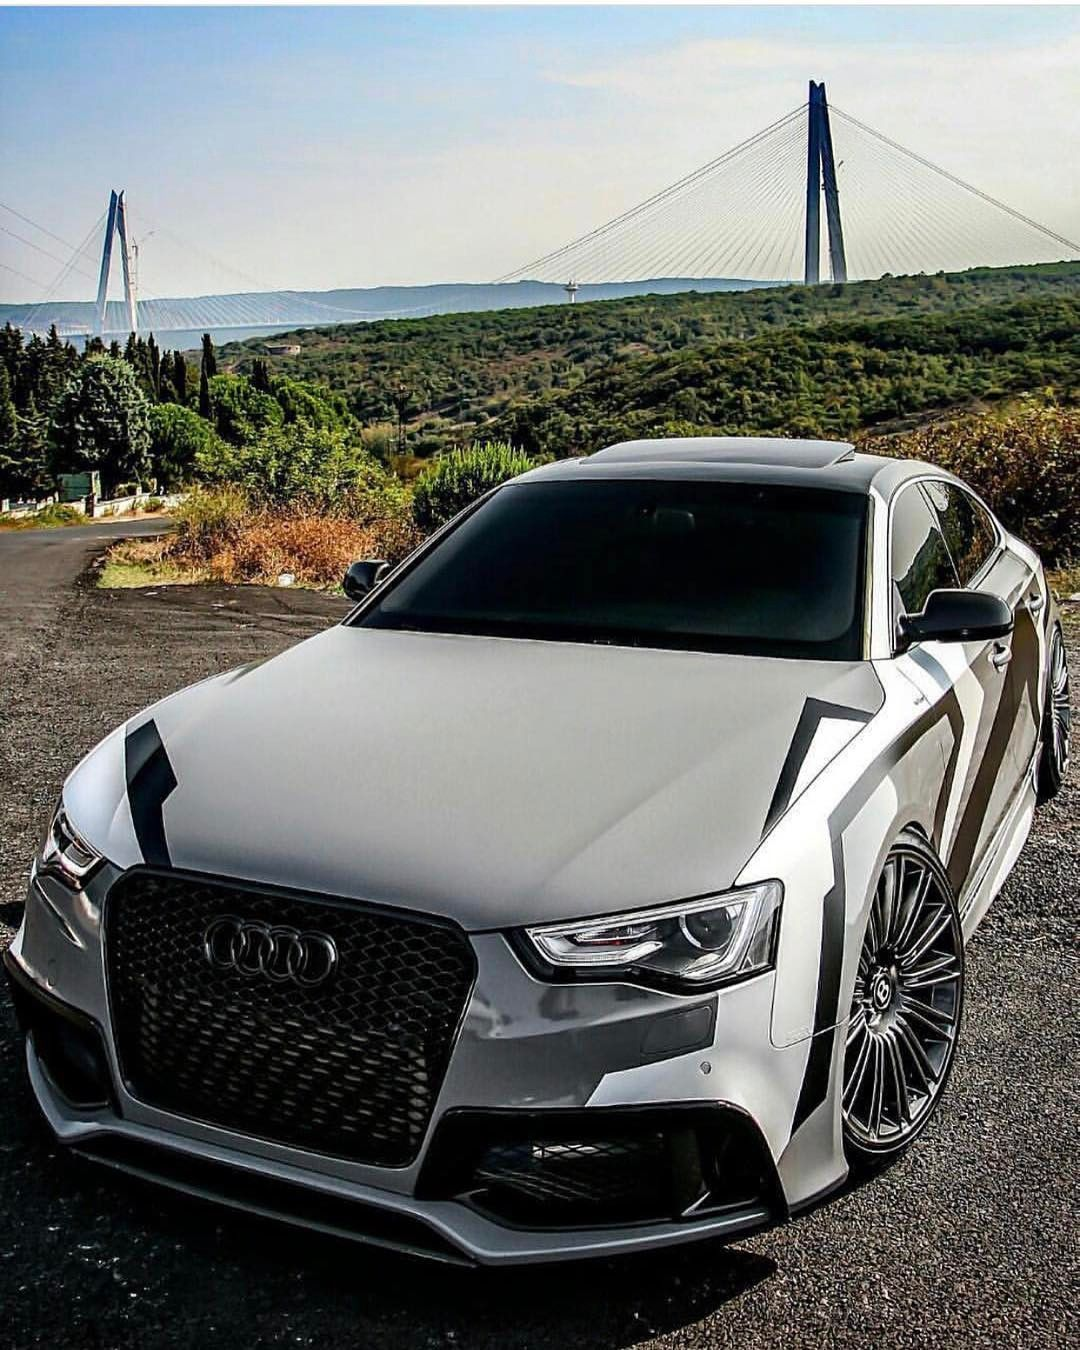 High End Luxury Cars Audi: Sports Cars That Start With M [Luxury And Expensive Cars